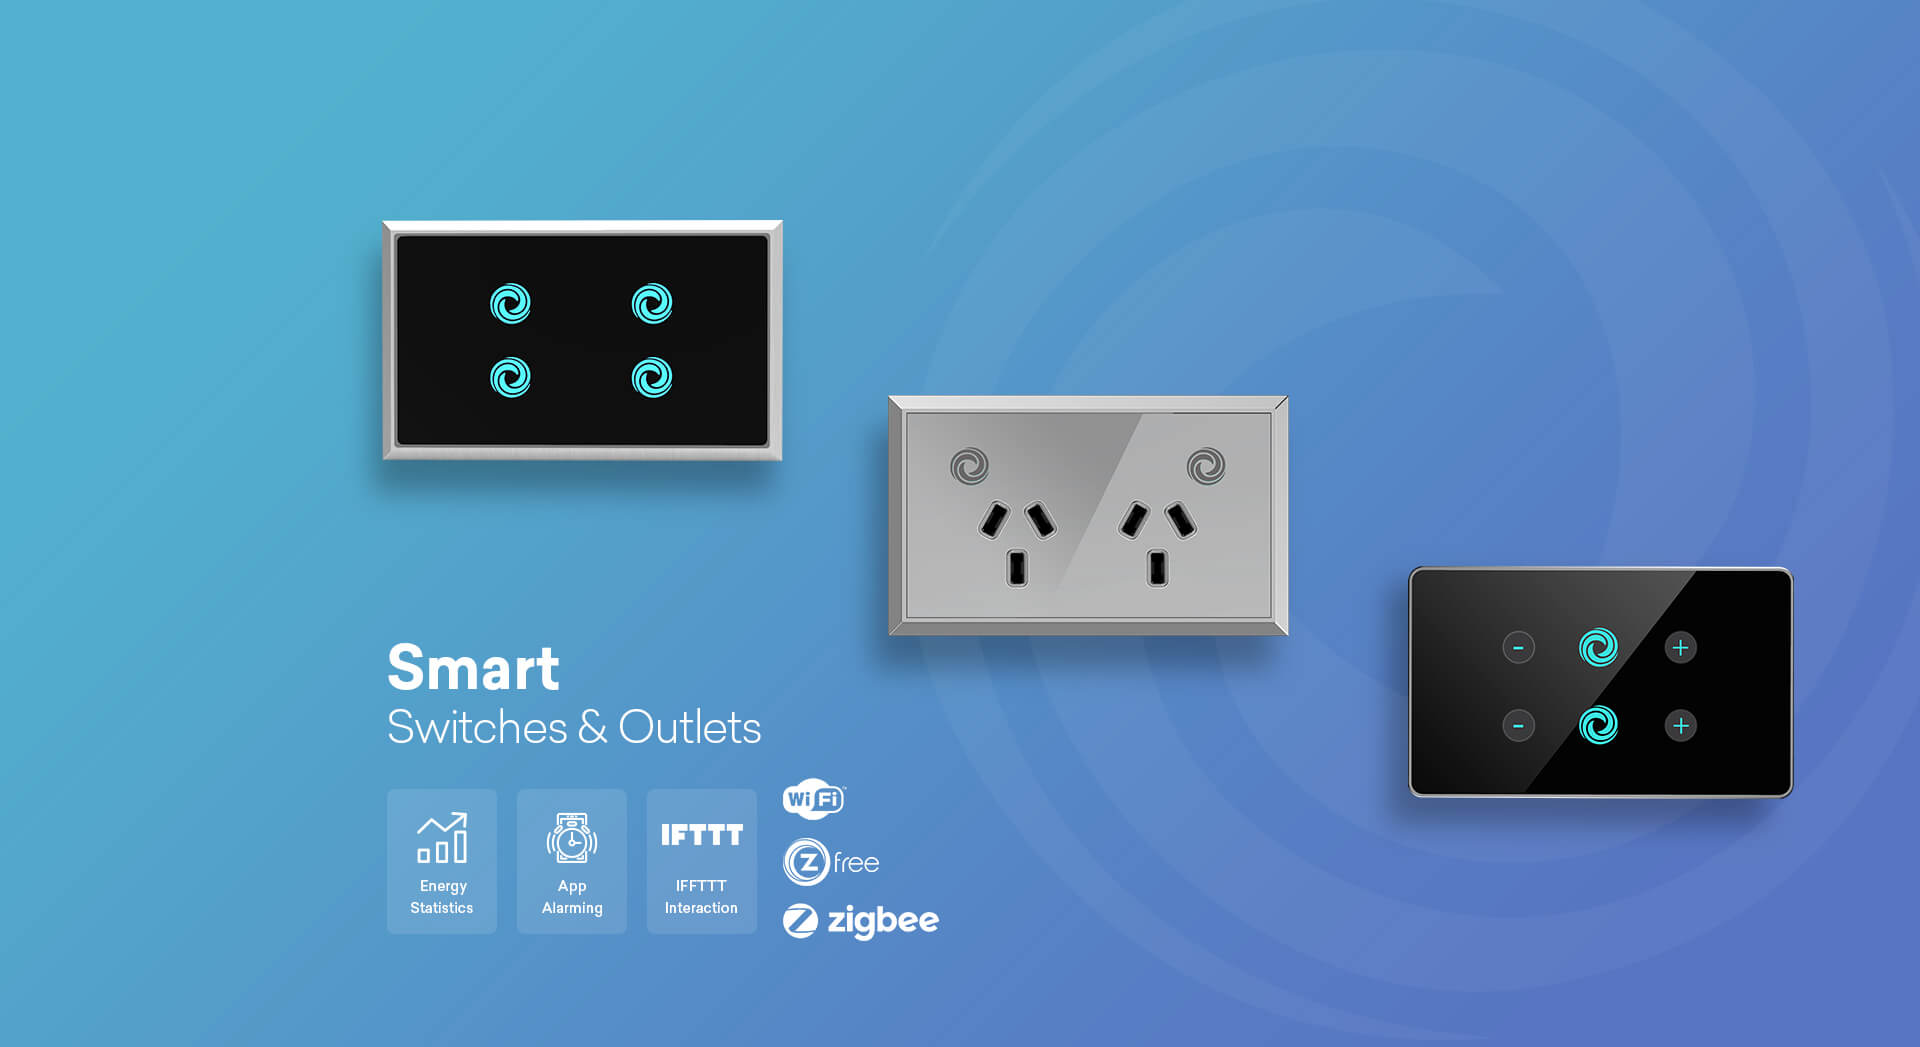 Smart home devices banner for switches